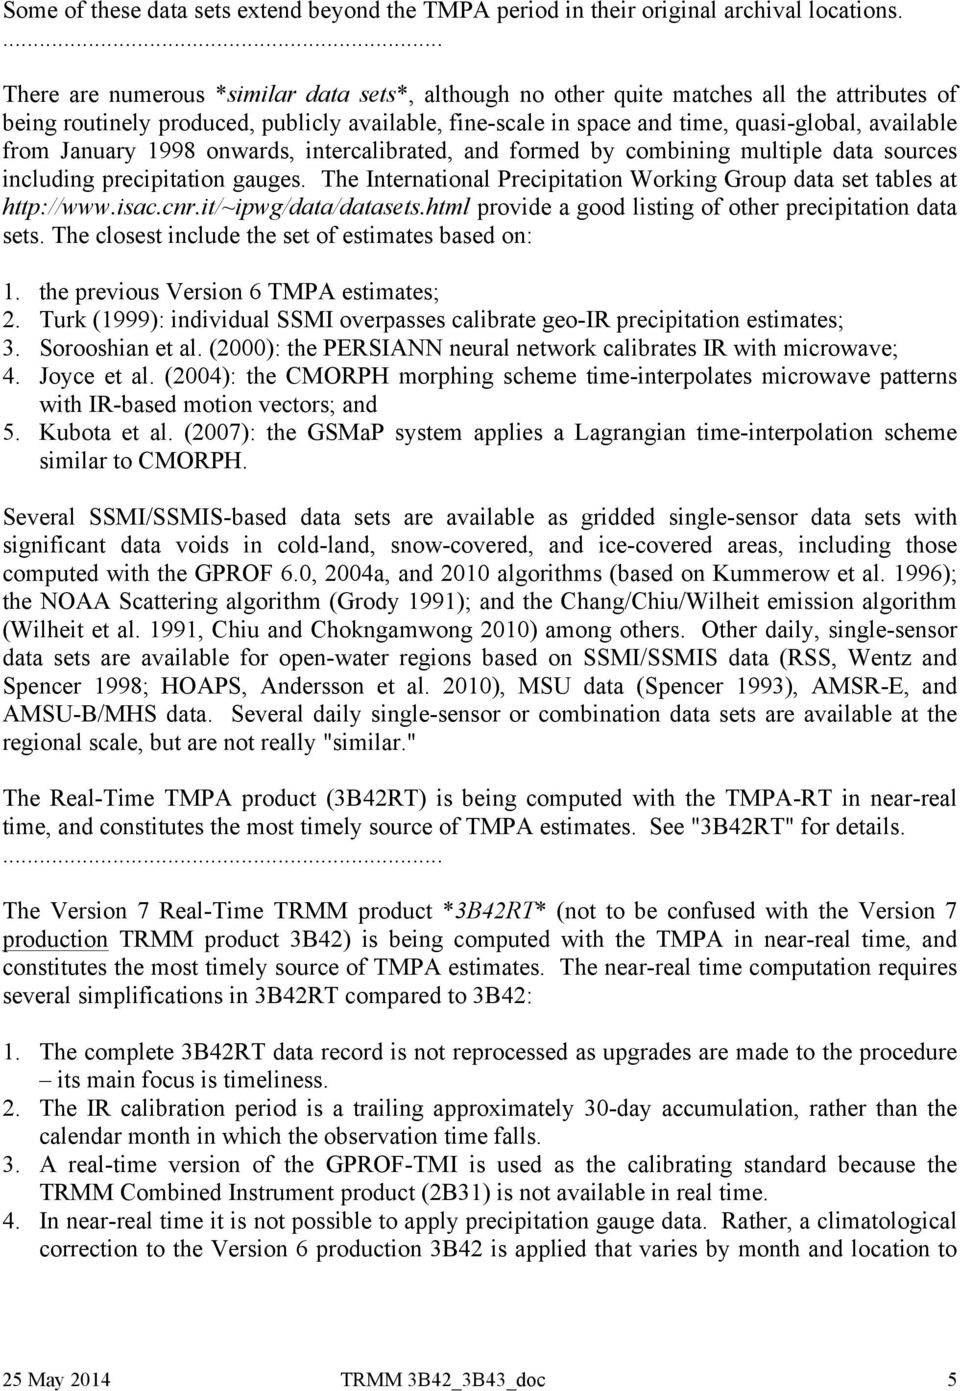 TRMM and Other Data Precipitation Data Set Documentation  George J